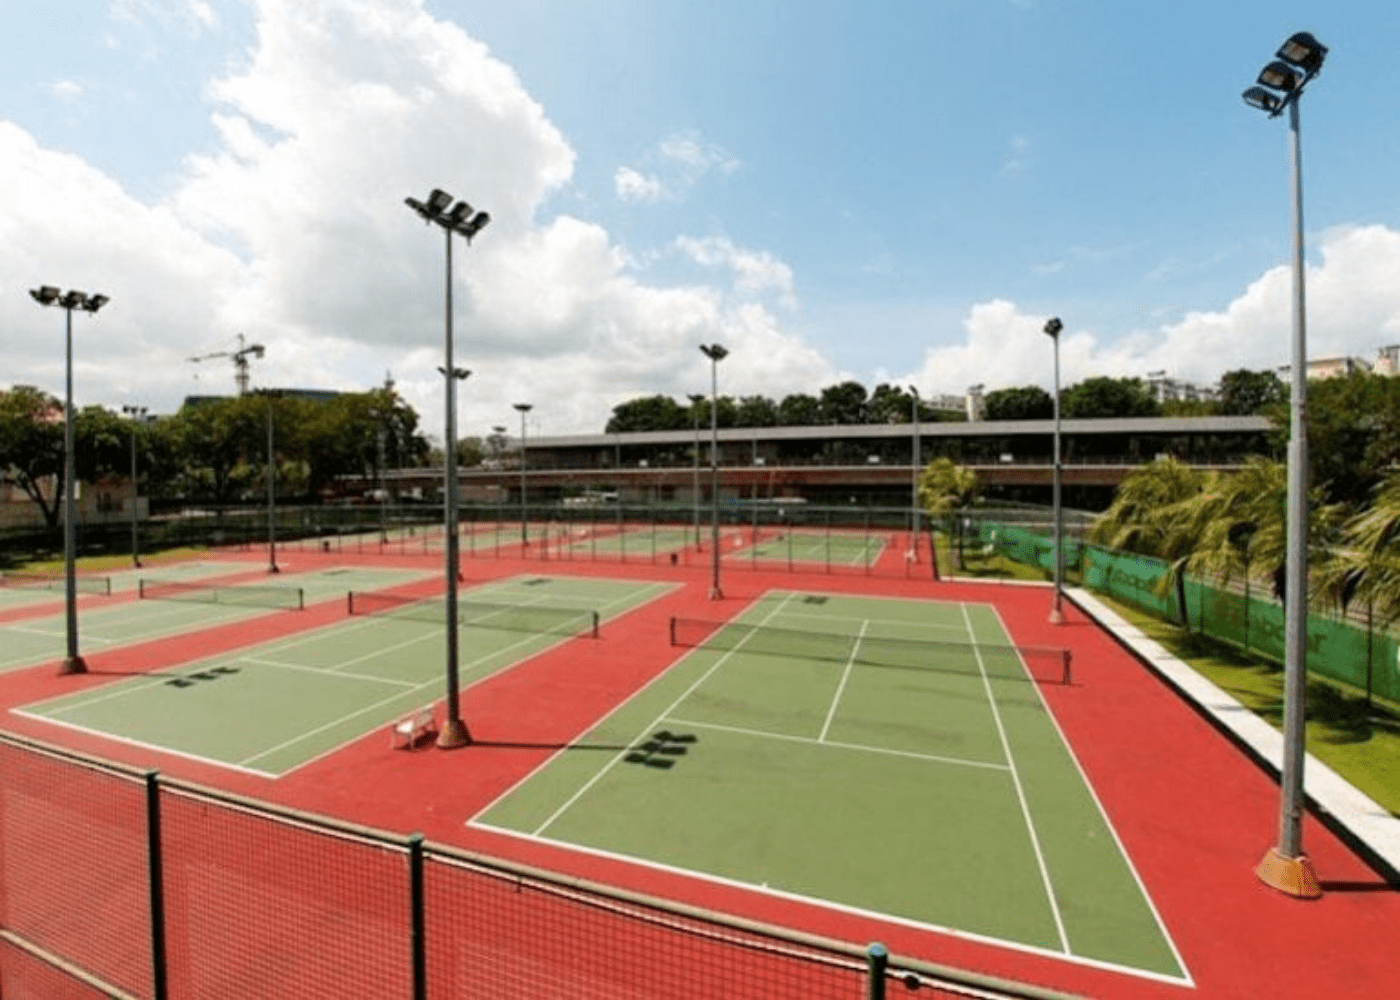 Yio Chu Kang Tennis Centre   Where to get tennis lessons for kids in Singapore